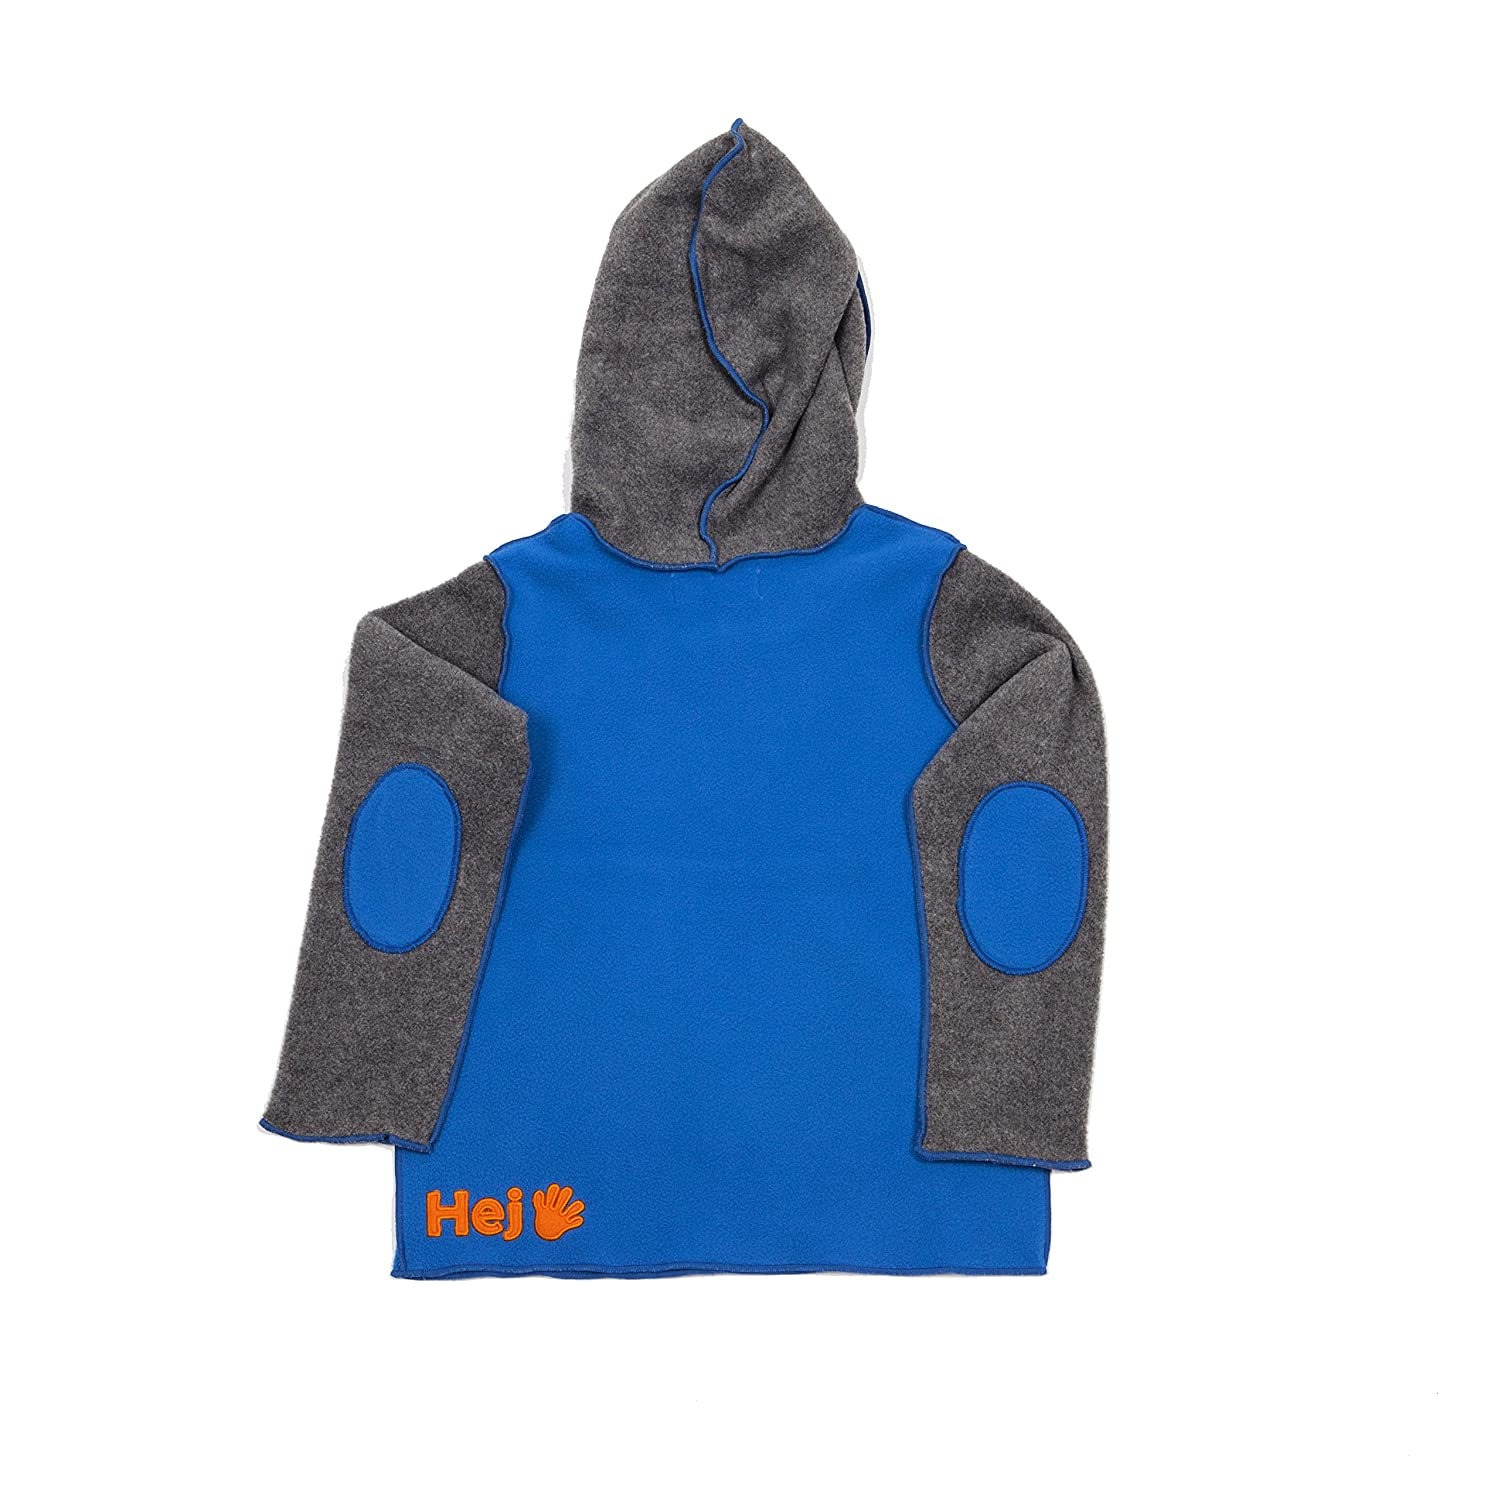 Hej 100/% Polyester Blue Grey Hoodie With Kangaroo Pocket Sweat Shirt For Boys